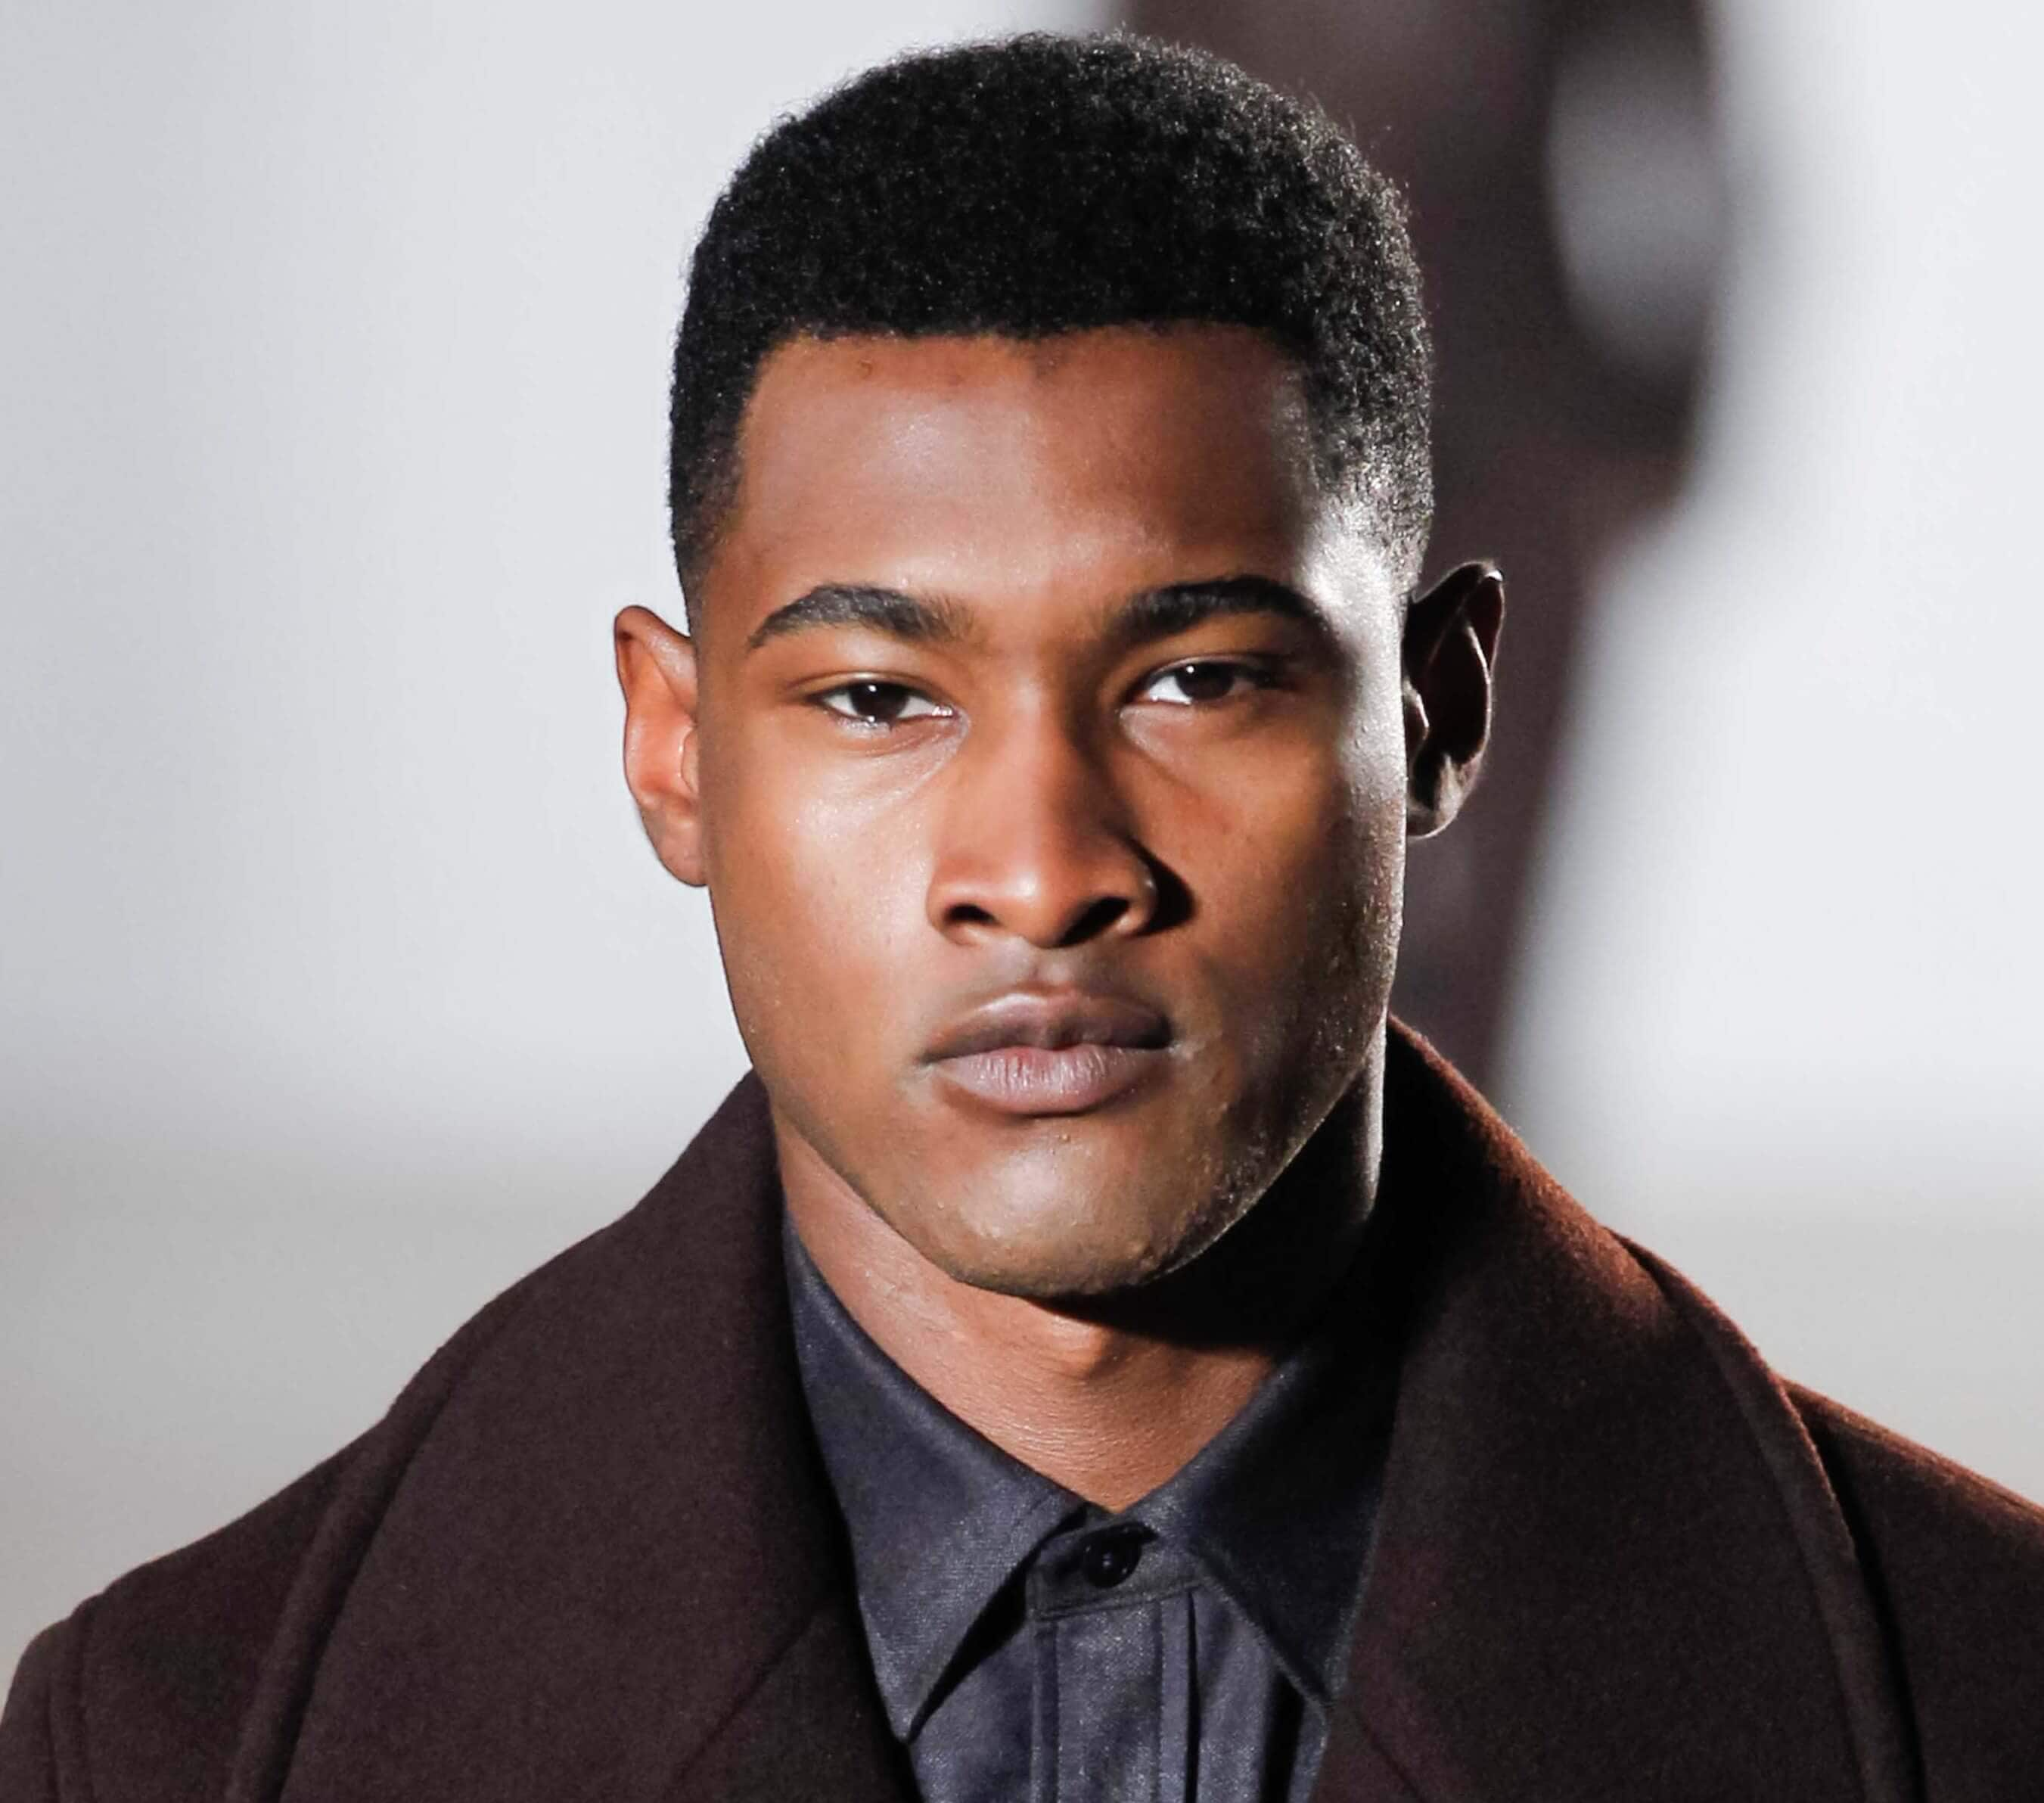 High top fade: Black man on runway with short high top fade wearing dark outfit.